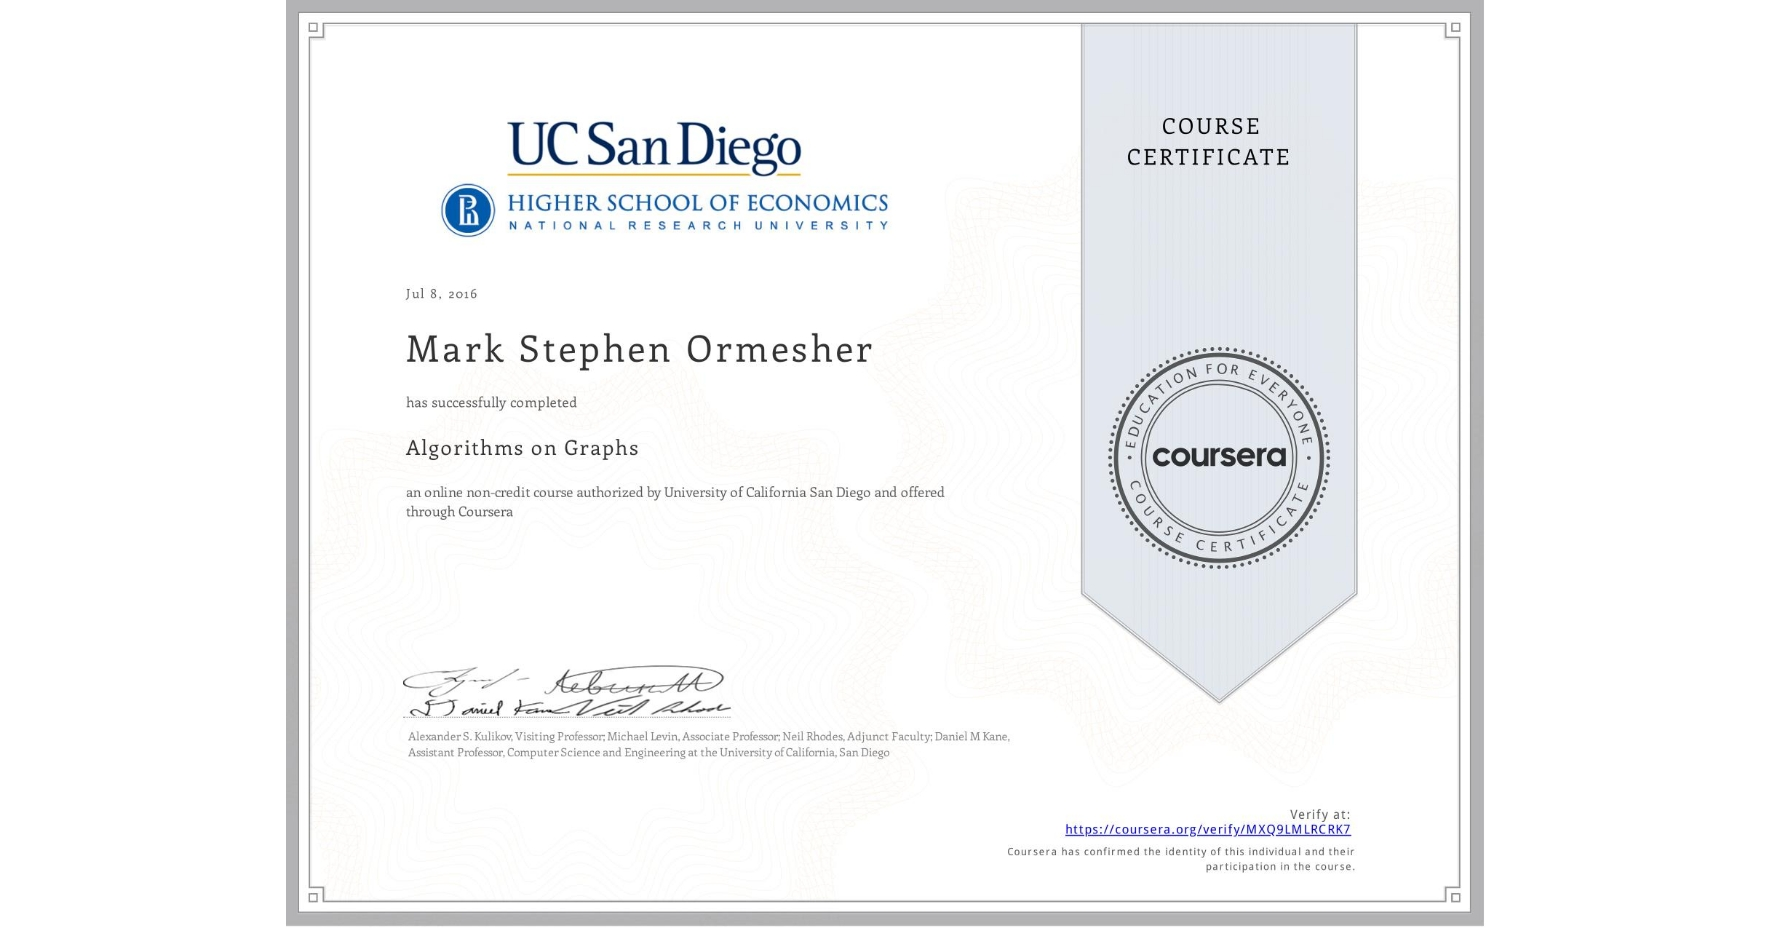 View certificate for Mark Stephen Ormesher, Algorithms on Graphs, an online non-credit course authorized by University of California San Diego & National Research University Higher School of Economics and offered through Coursera